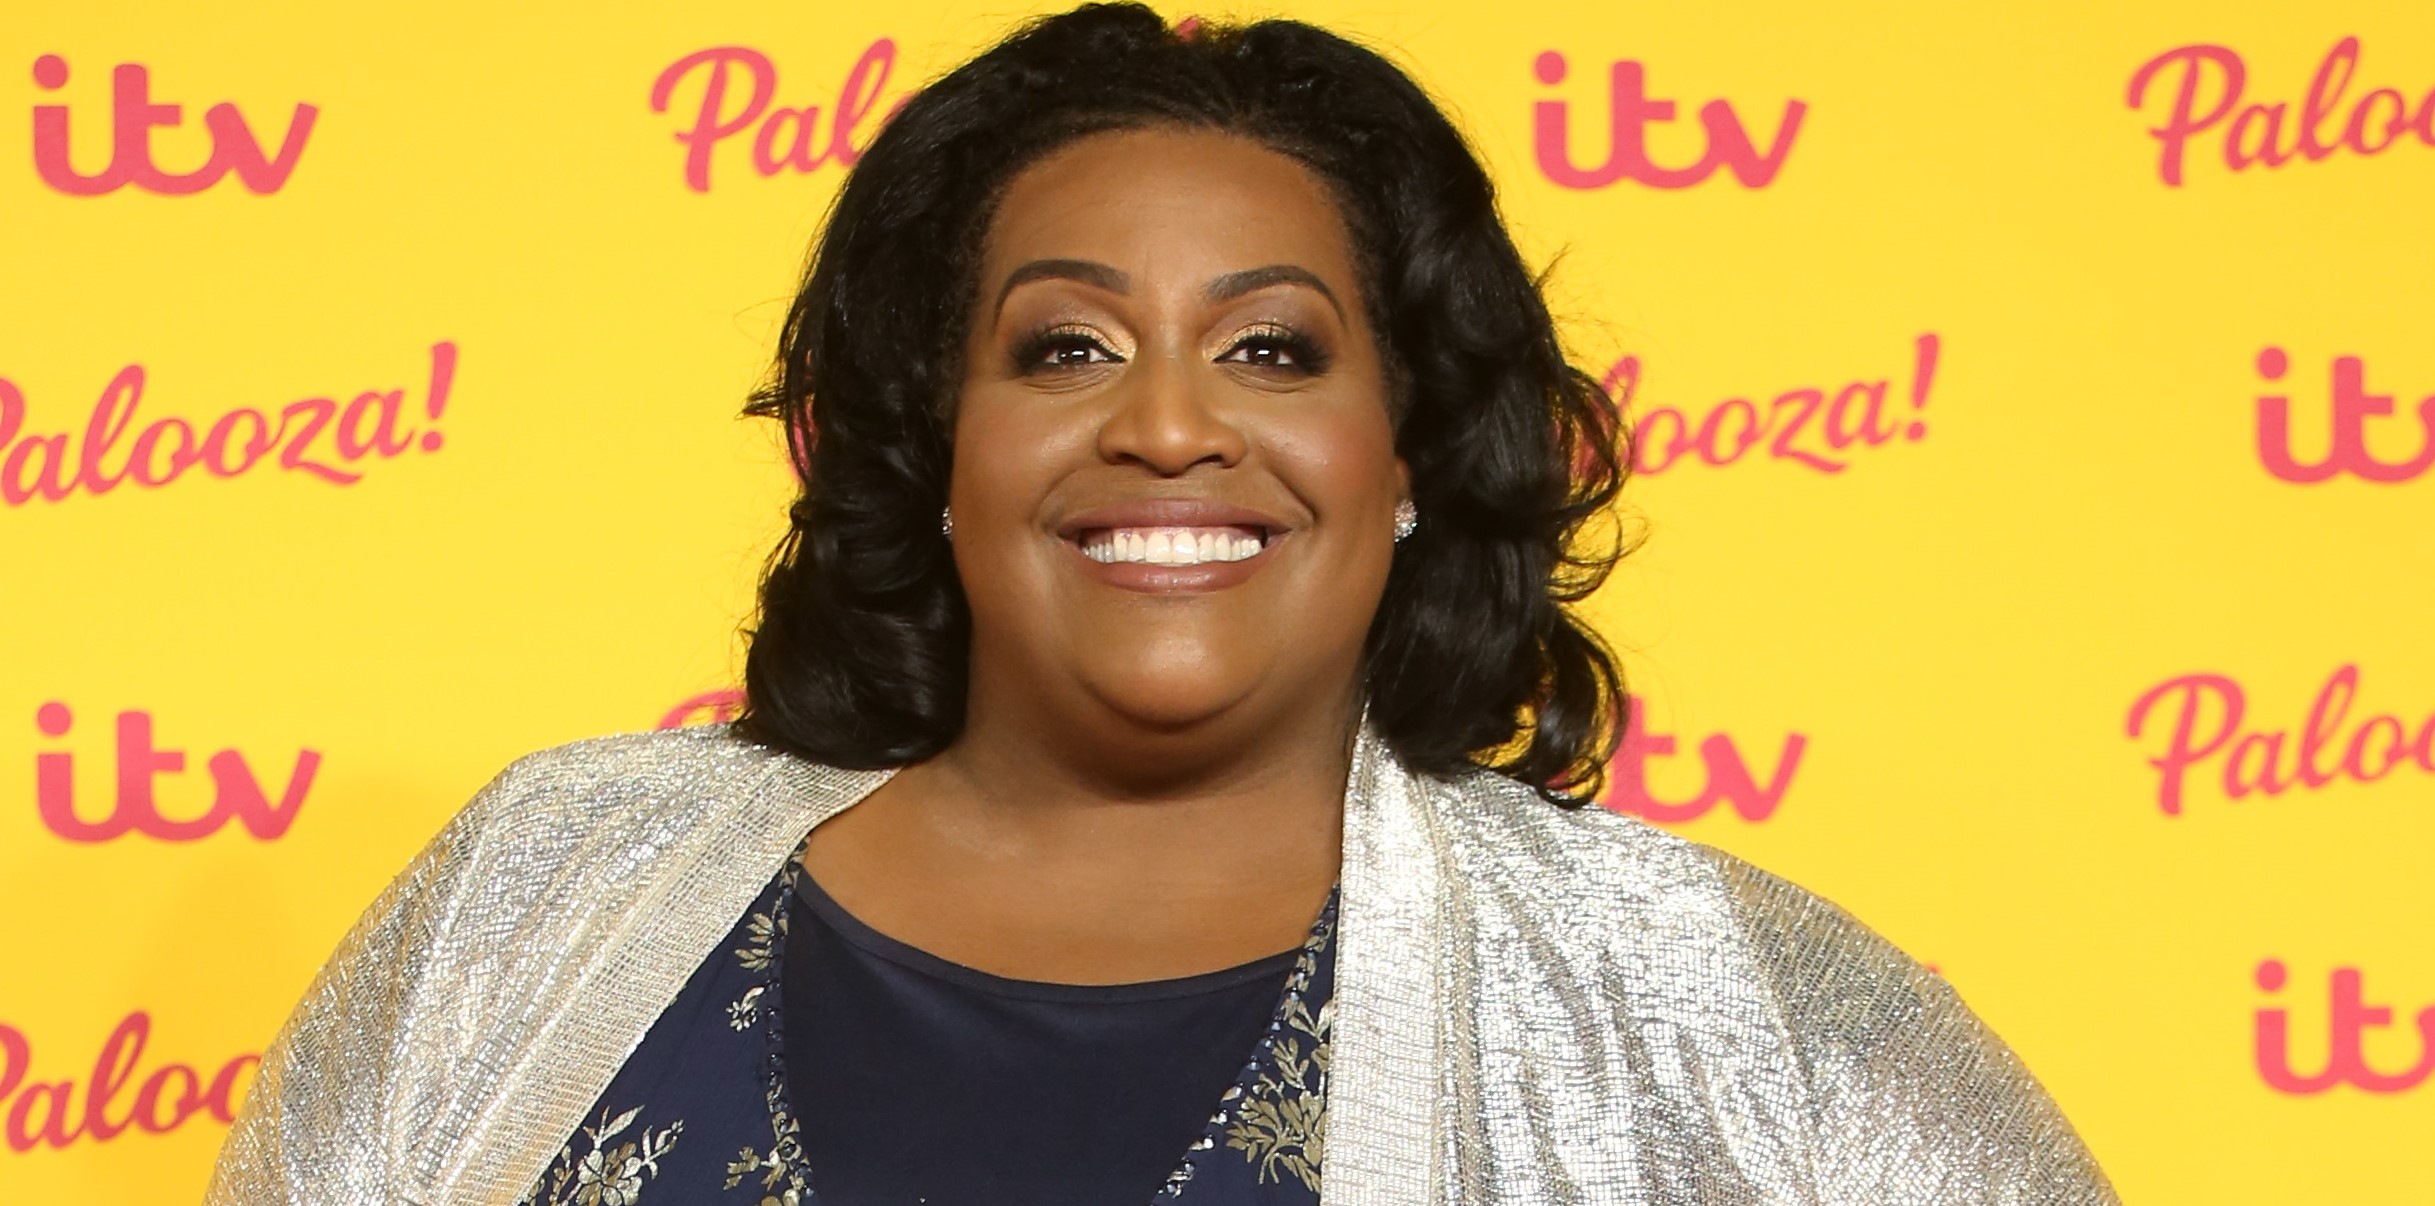 Alison Hammond publicly supports Phillip Schofield amid This Morning 'feud' claims